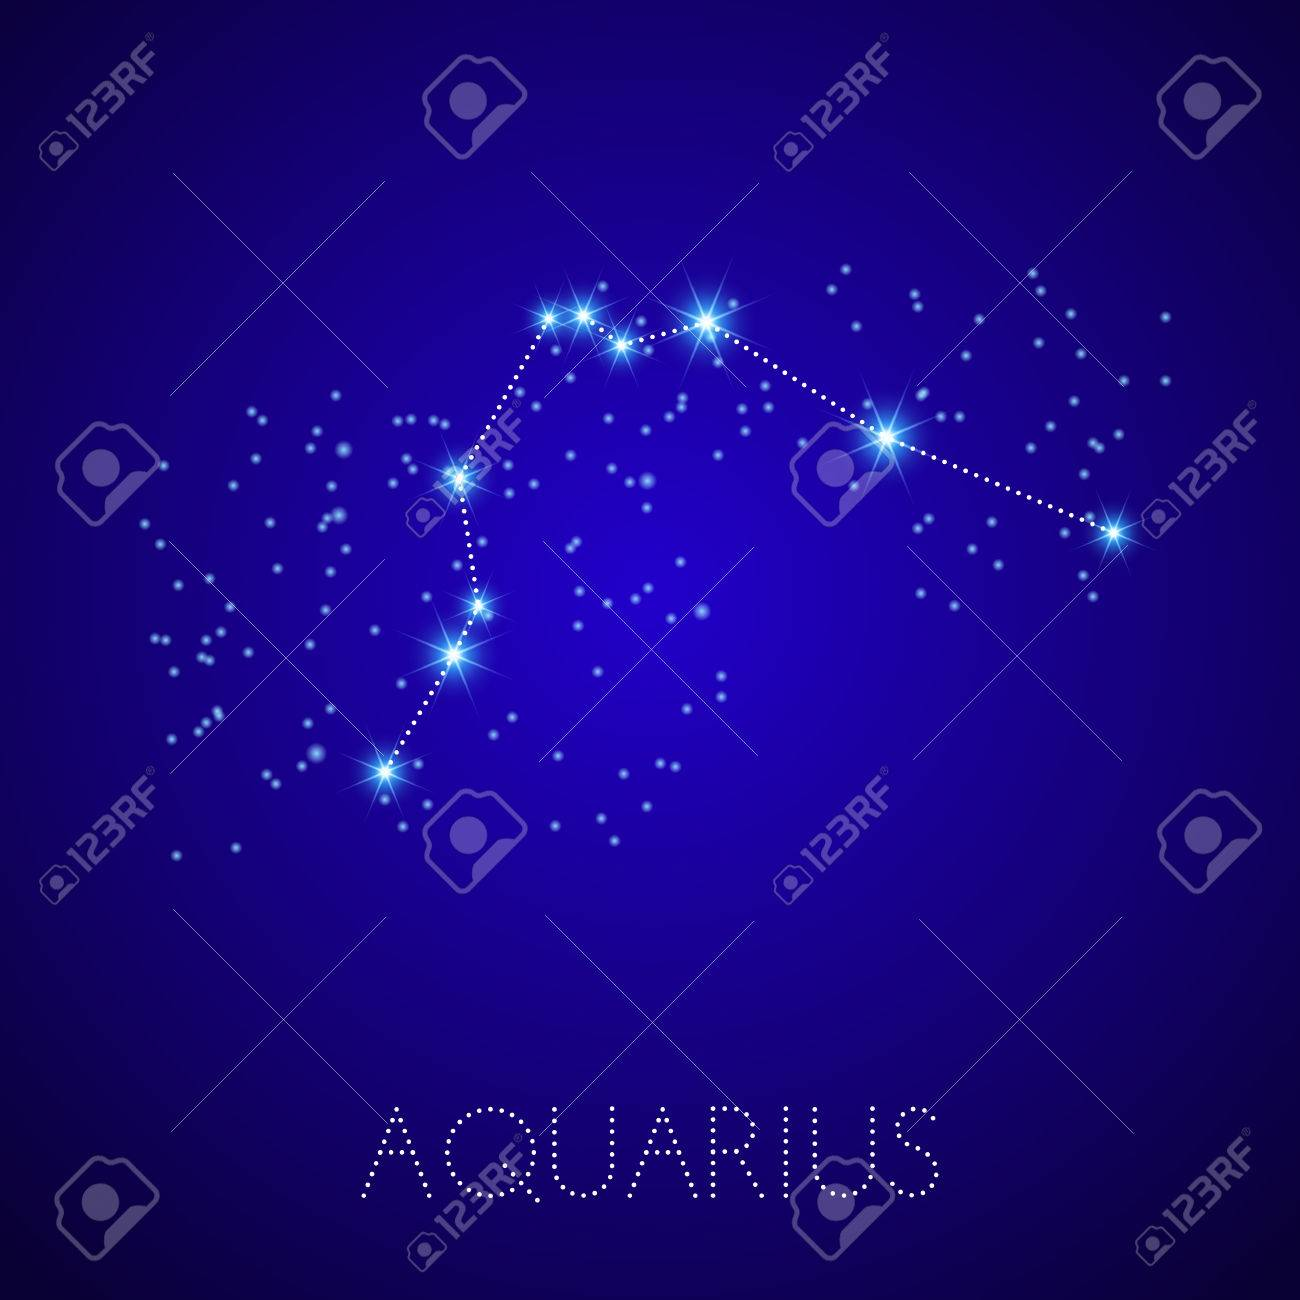 Zodiac Constellation Aquarius Realistic Star Map Fragment Vector - Zodiac constellations map